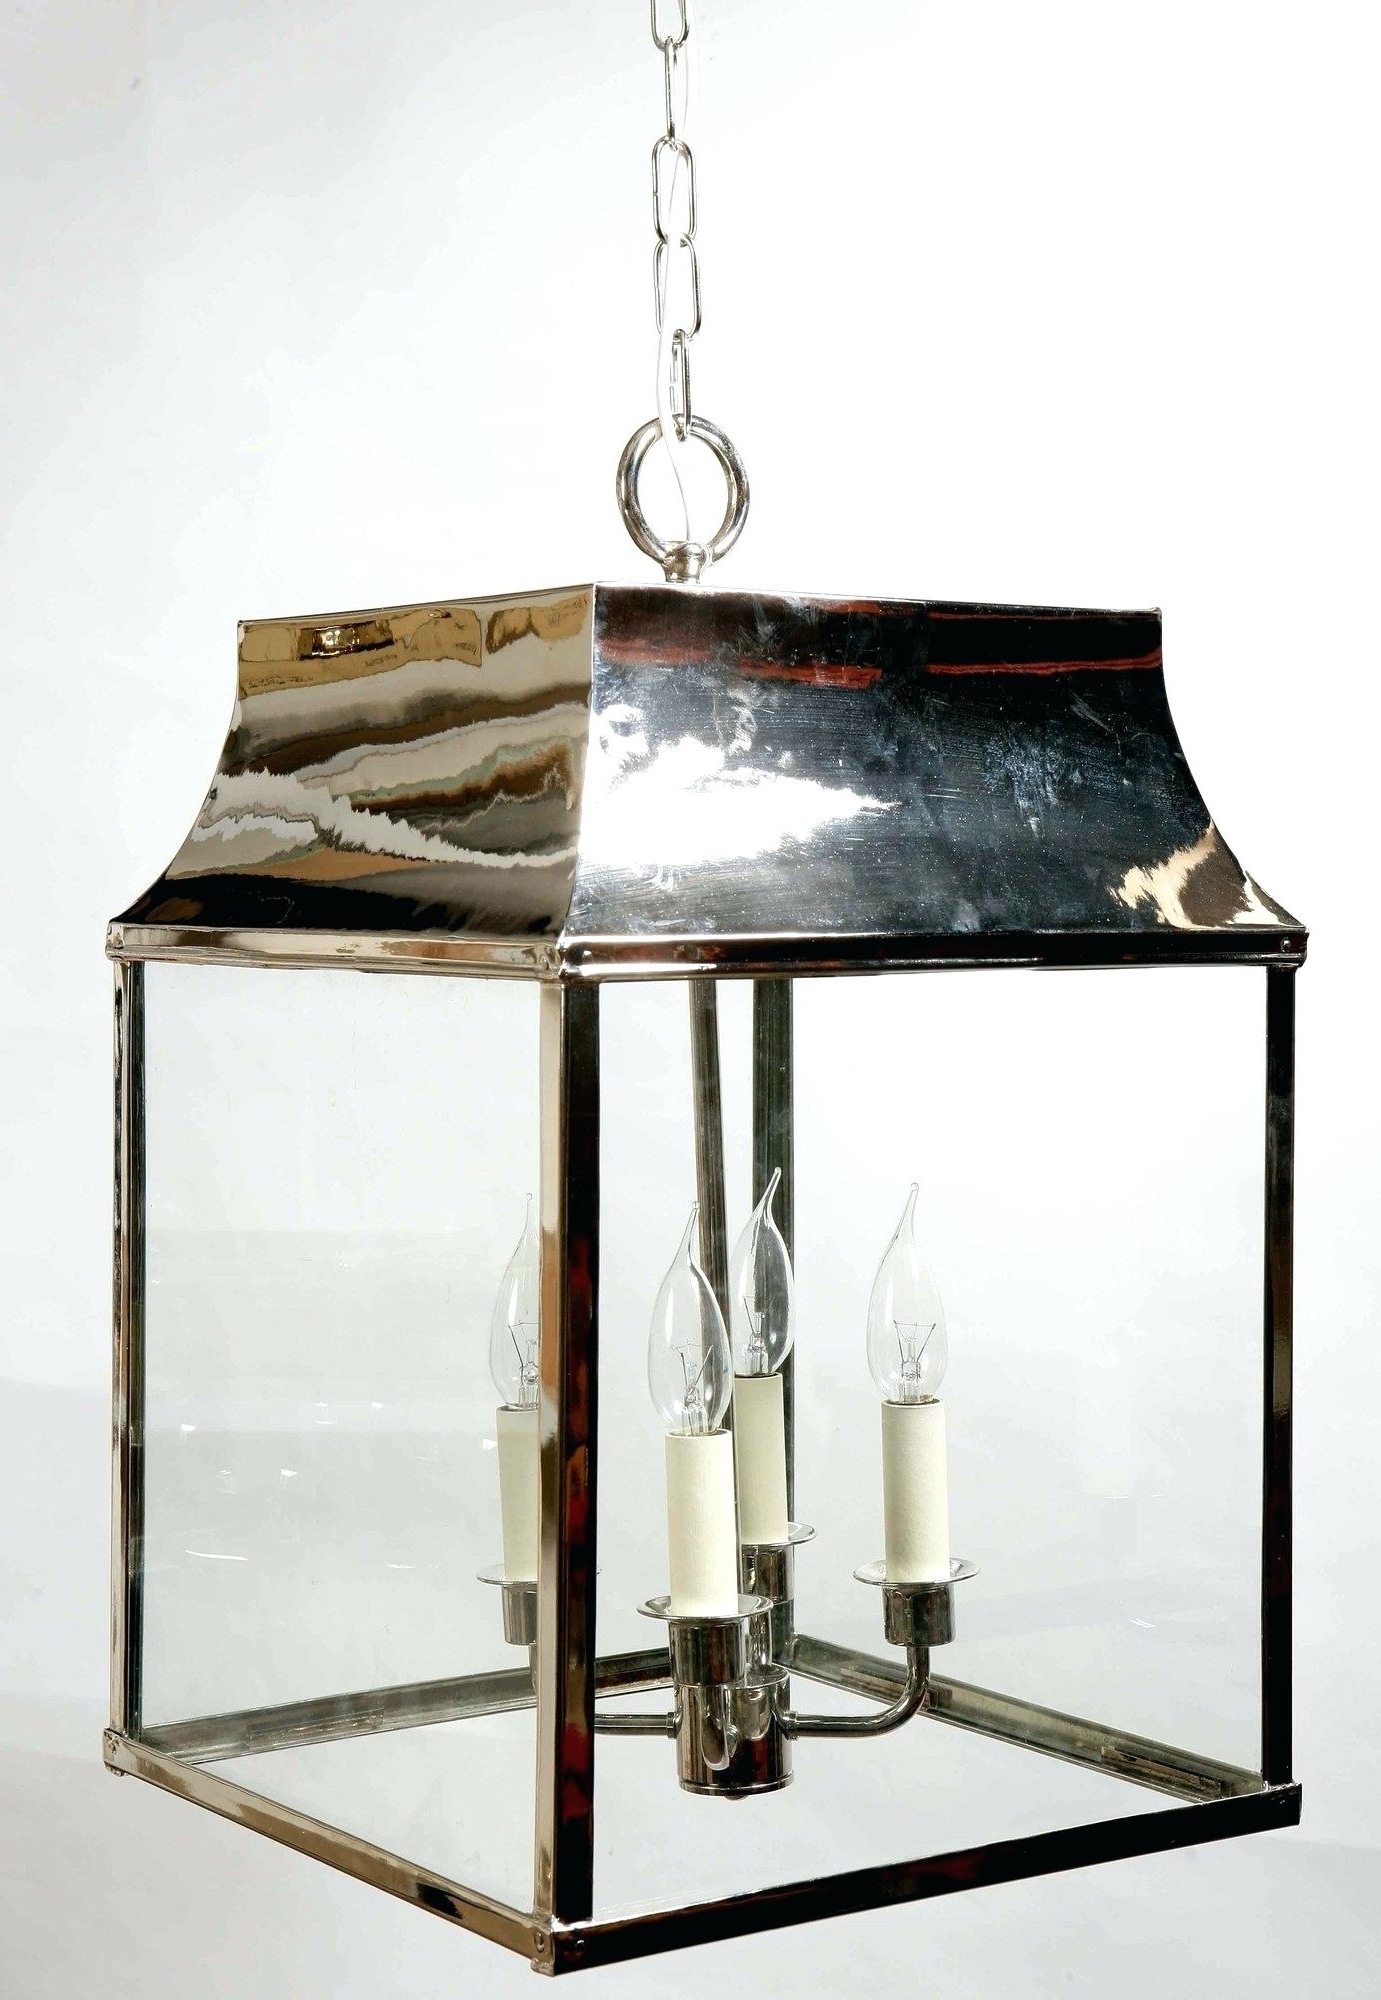 Outdoor Hanging Lanterns From Australia Intended For Most Recent Outdoor Hanging Lanterns Solar Lamp Australia Sonoma Outdoors (View 11 of 20)